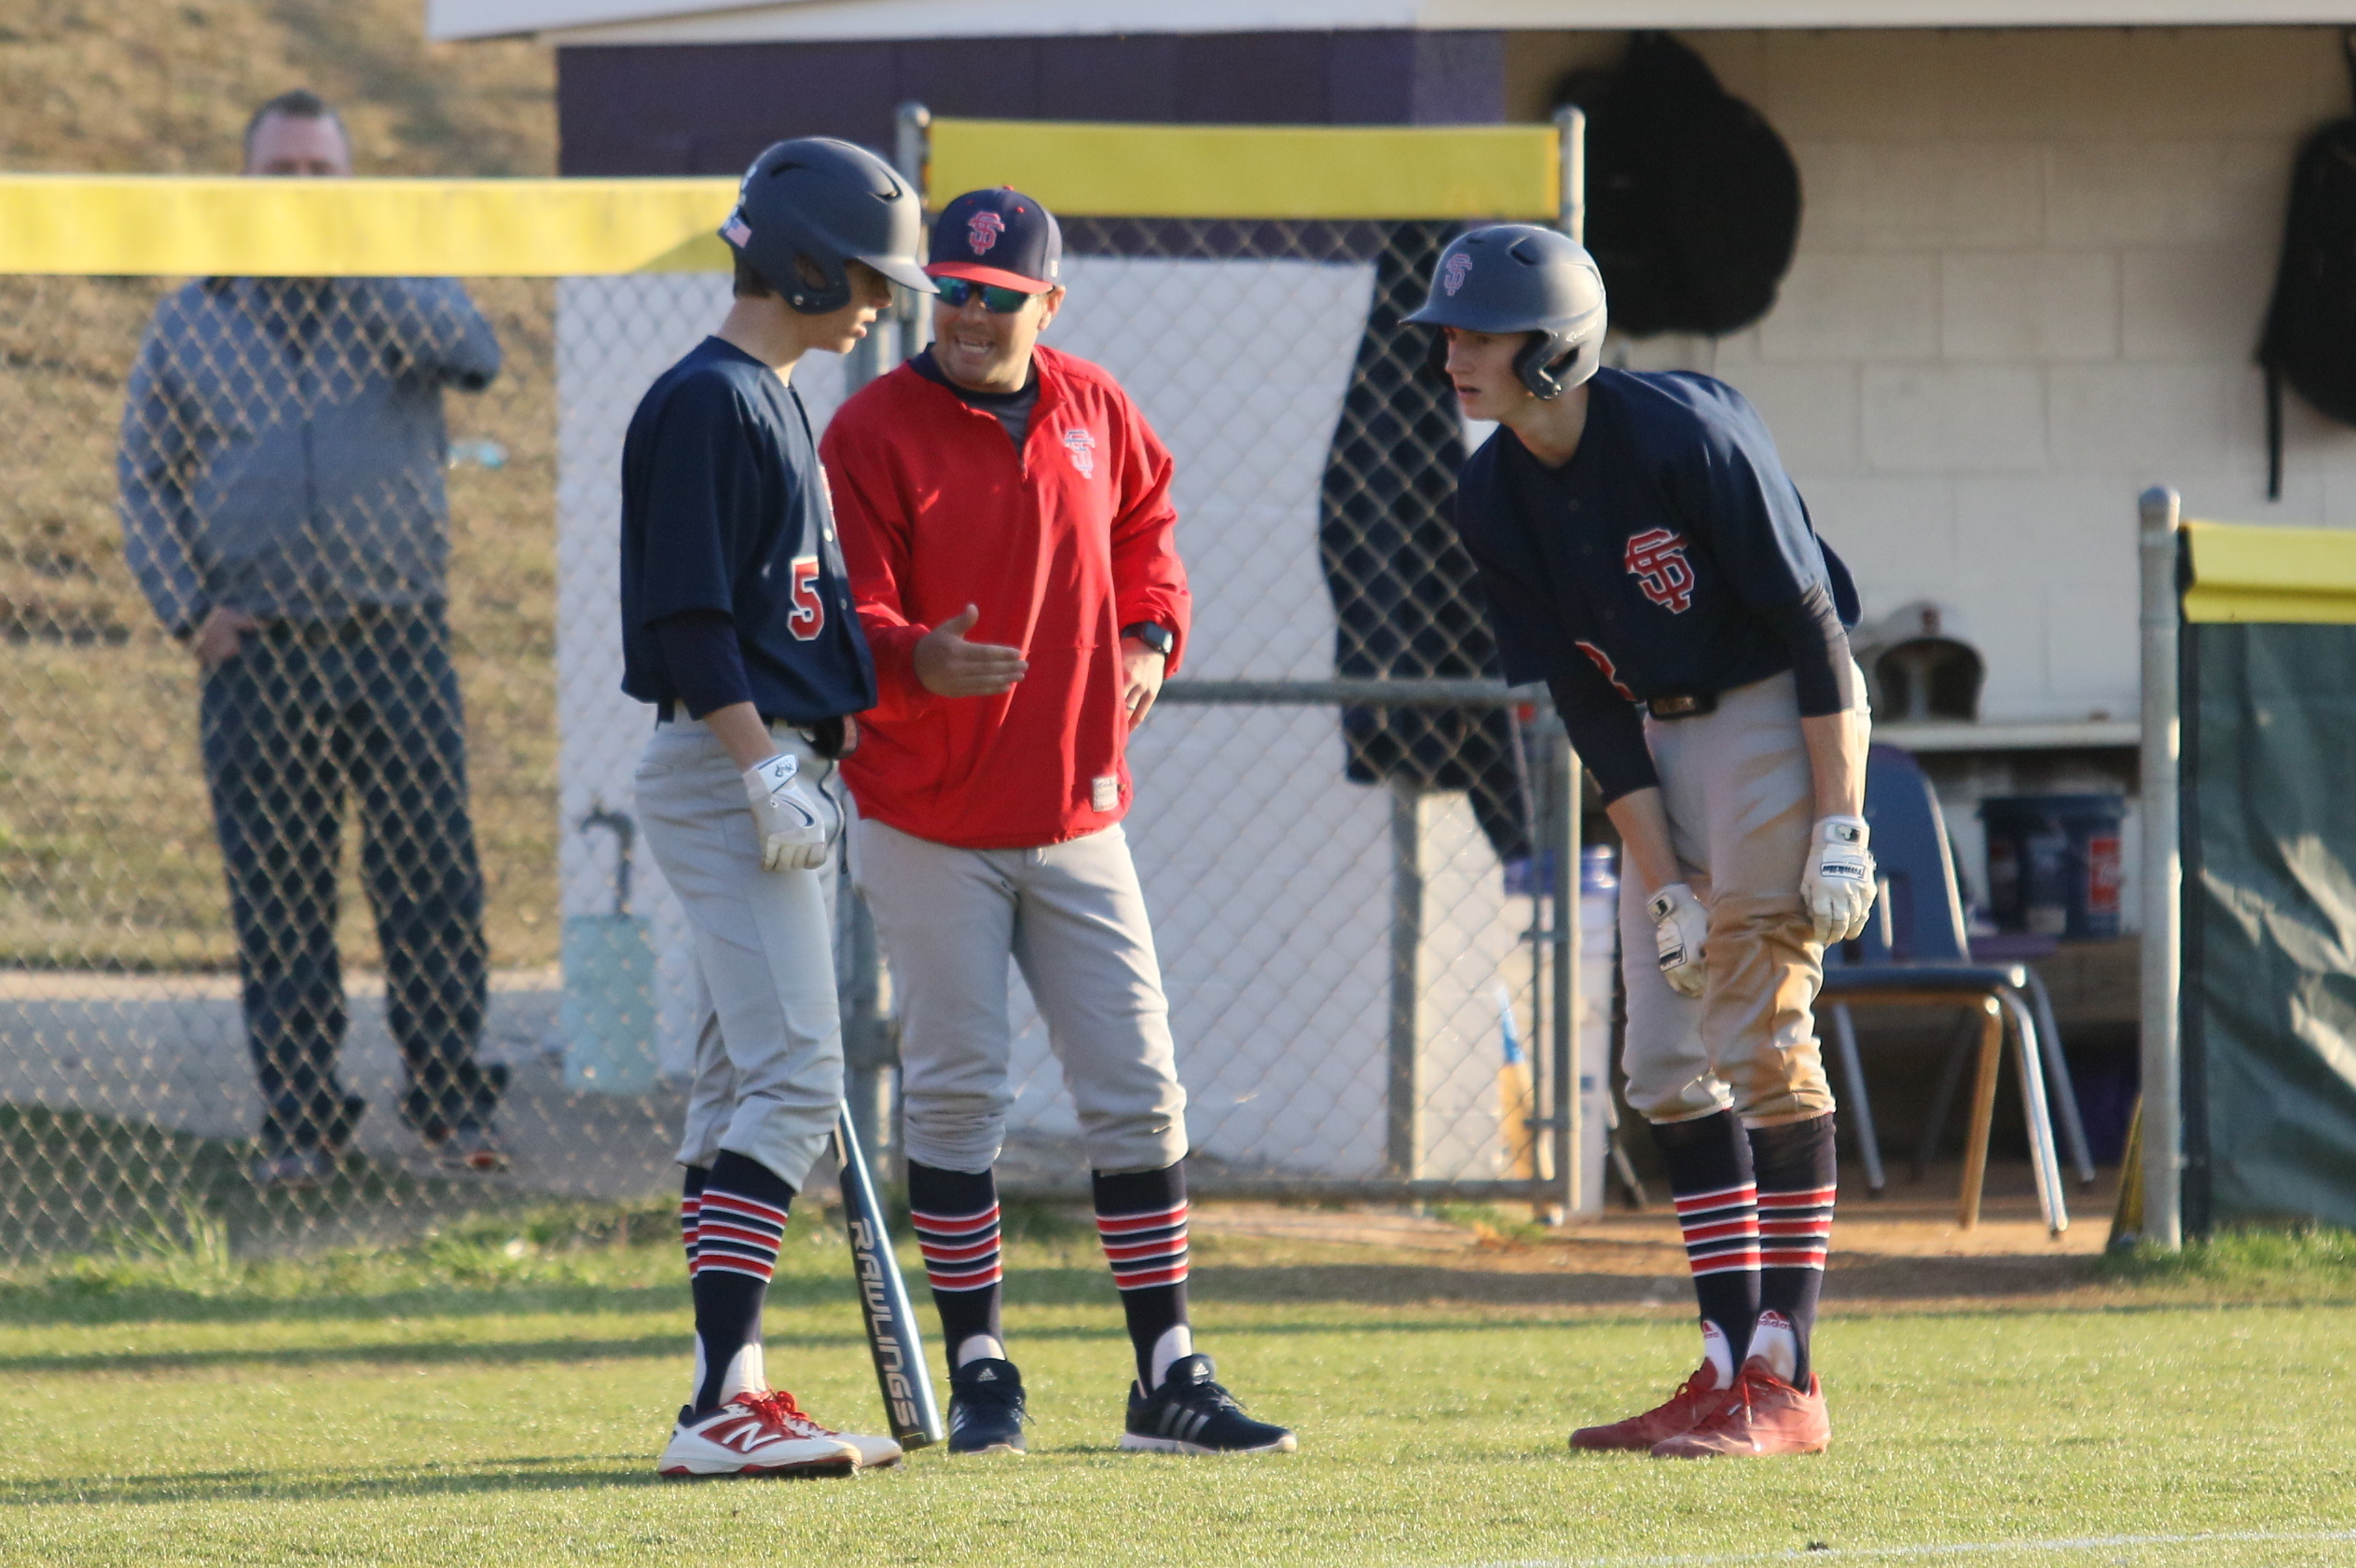 Varsity Baseball Scrimmage vs Midland Valley will be Home today 2/18 at 5:00pm